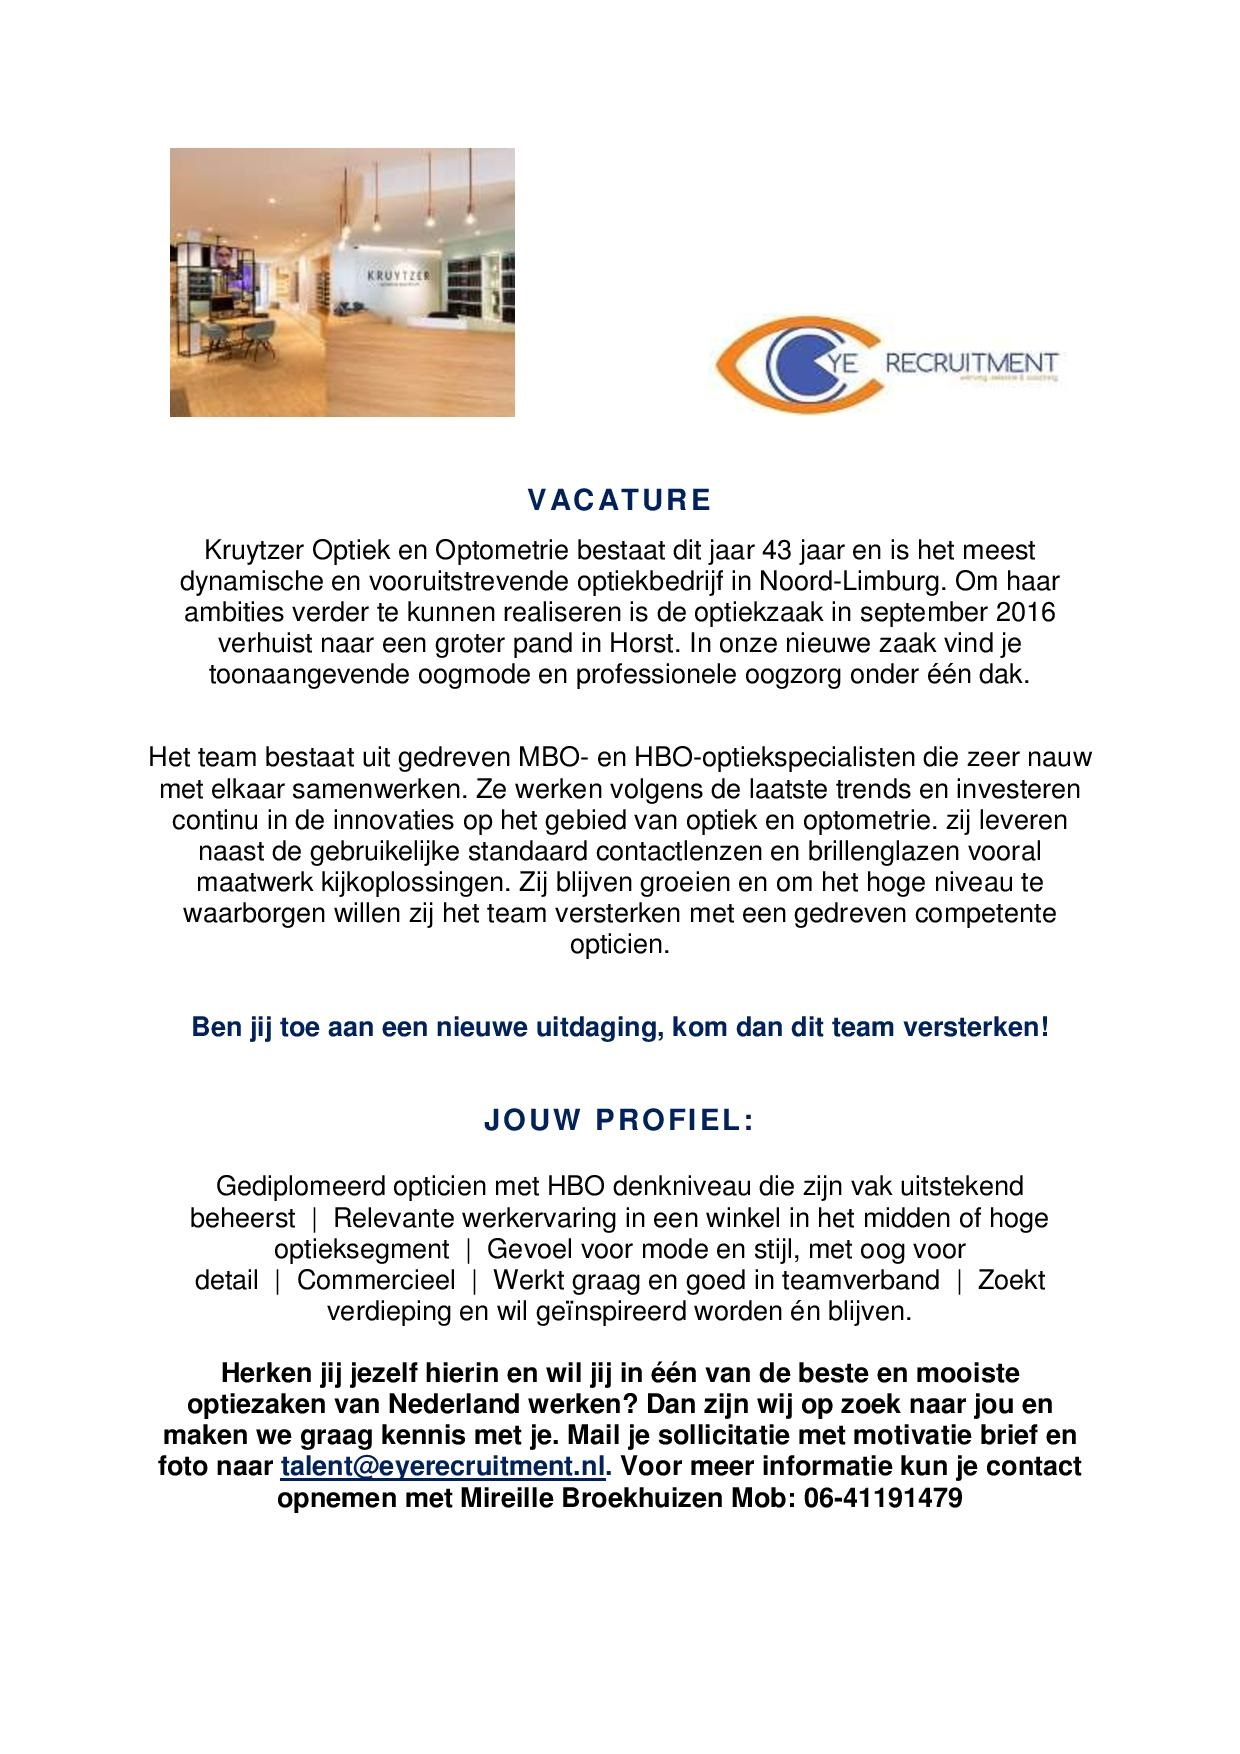 VACATURE opticien Kruytzer-page-001